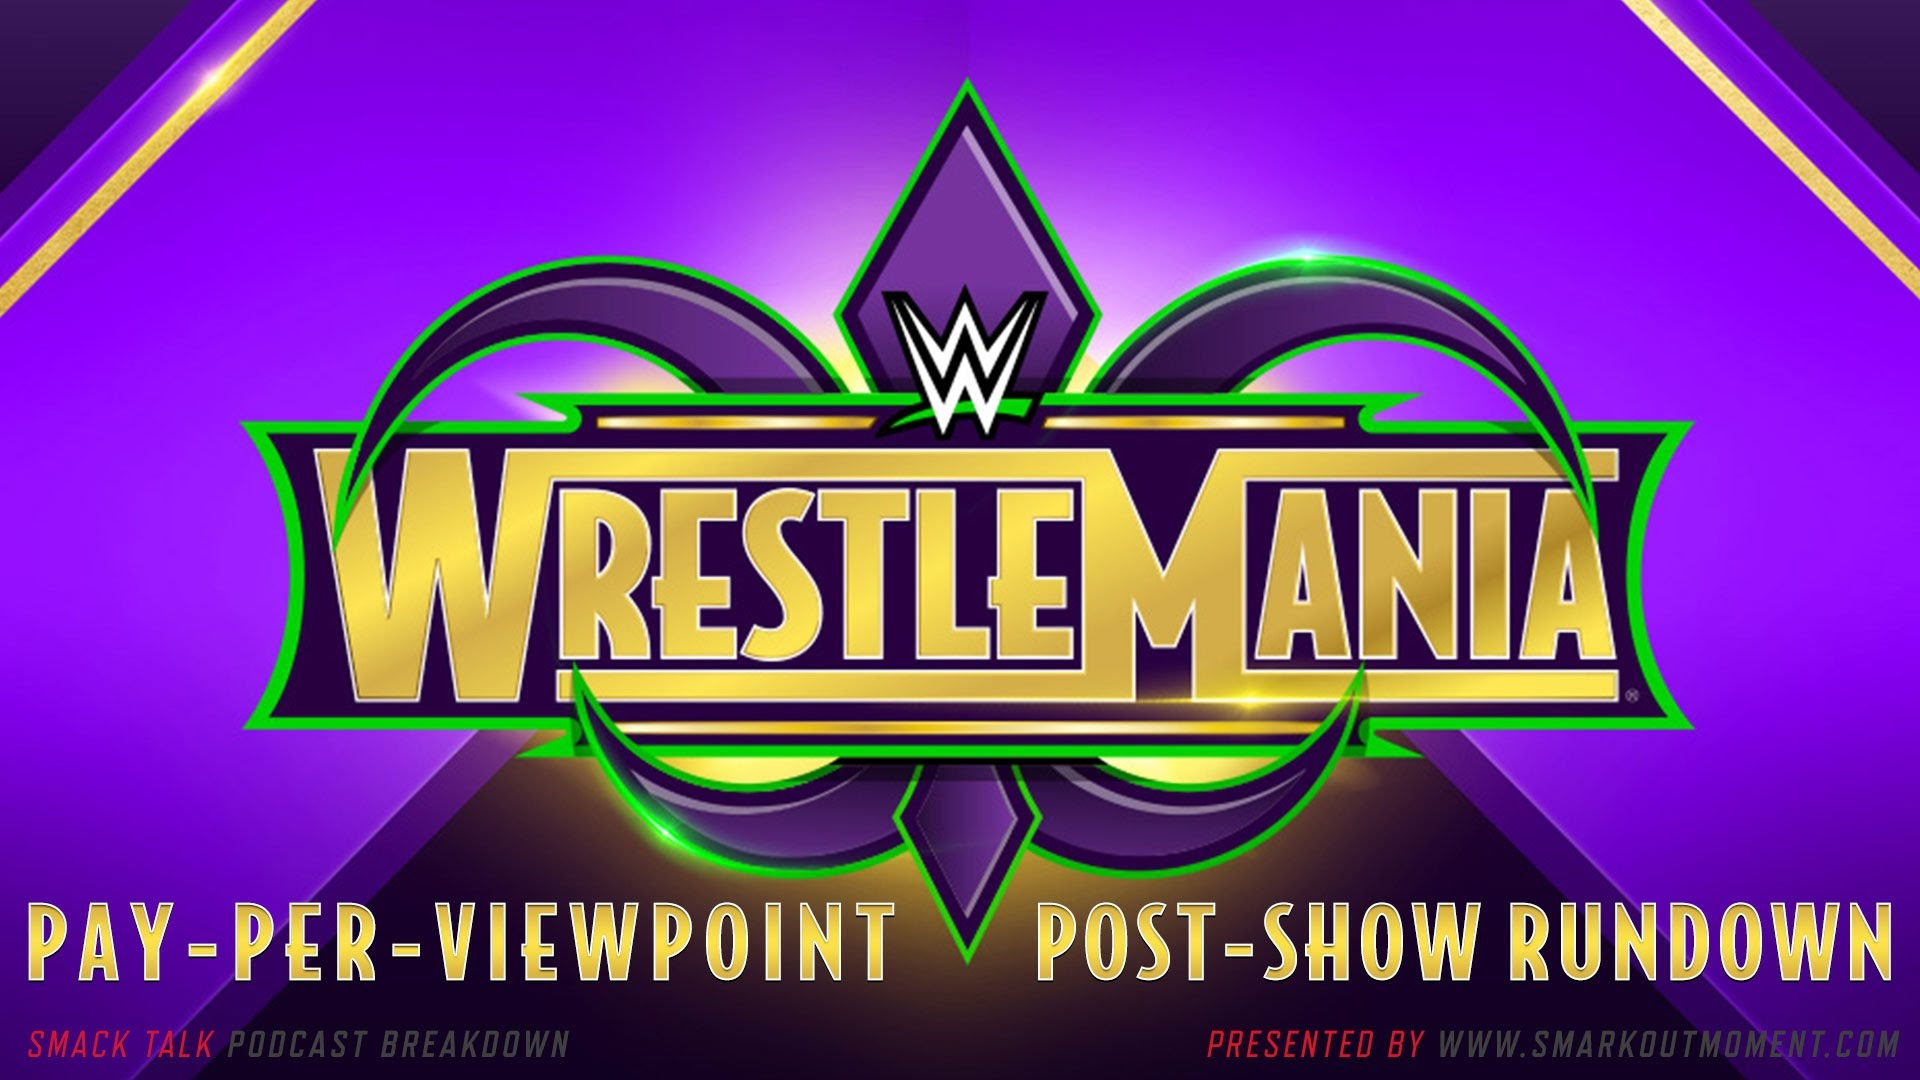 WWE WrestleMania 34 Recap and Review Podcast